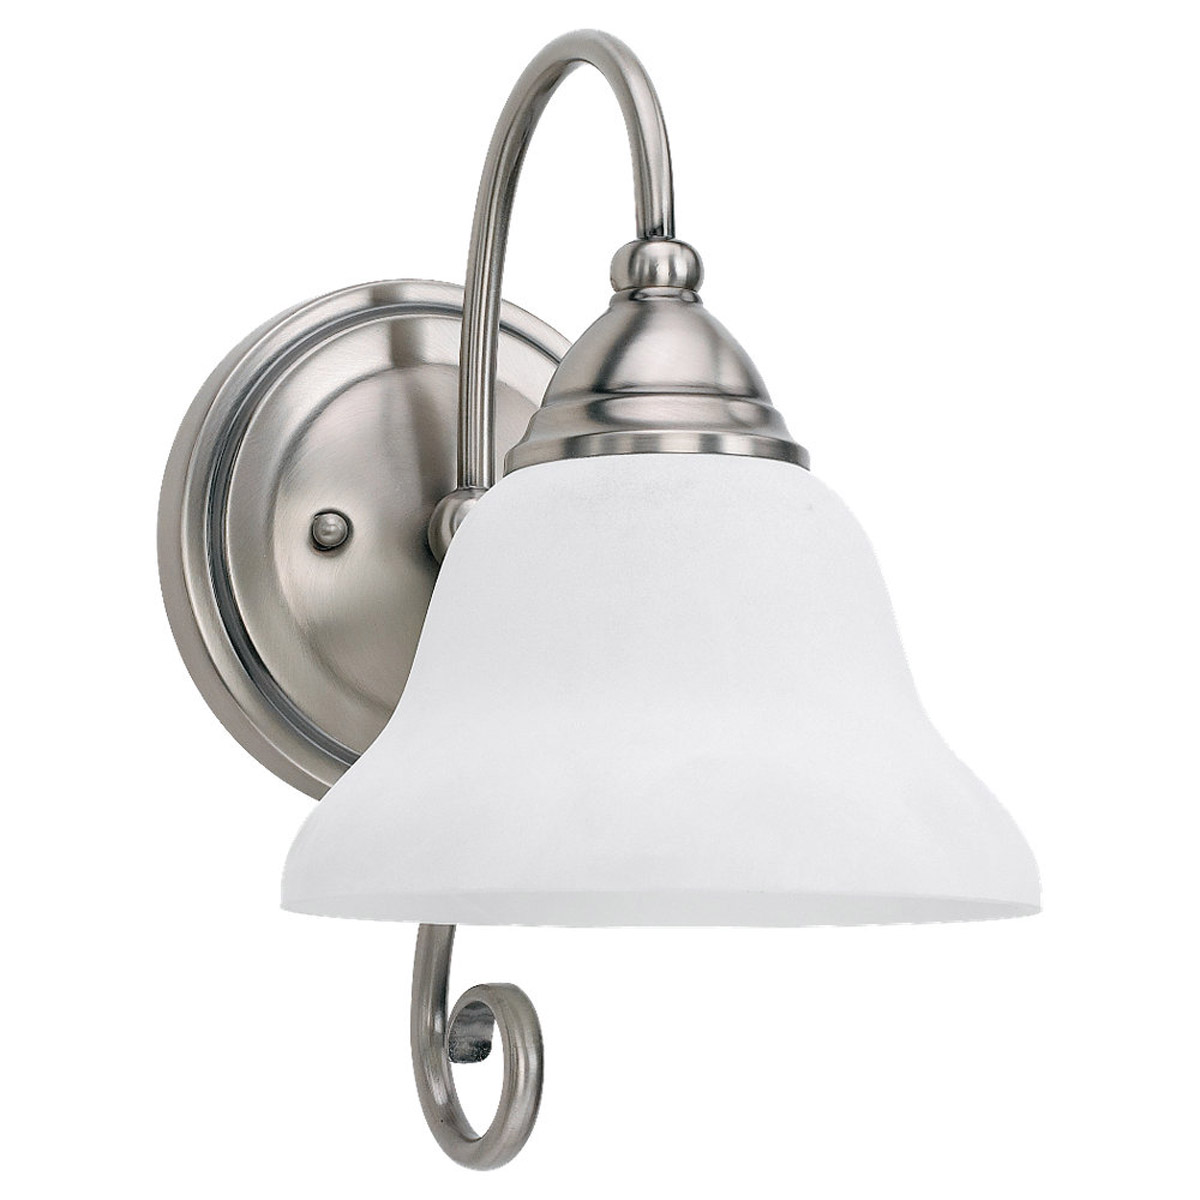 Sea Gull Lighting Montclaire 1 Light Bath Vanity in Antique Brushed Nickel 41105-965